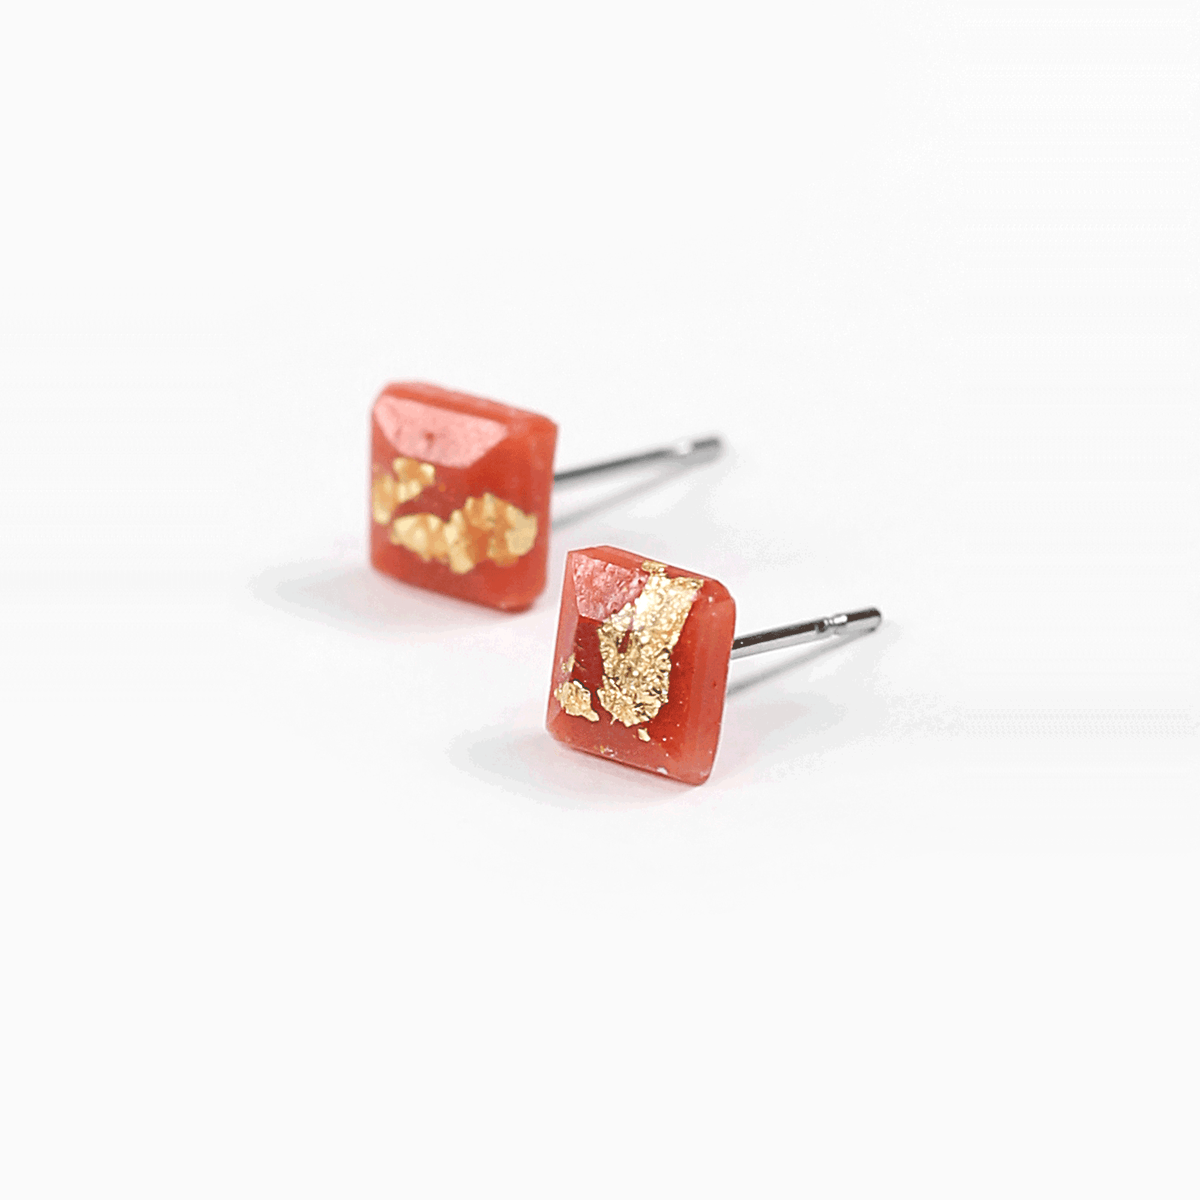 Coral Mosaique Stud Earrings - Handmade in Eco-friendly Resin & Gold Leaf - Sold by Chic & Basta